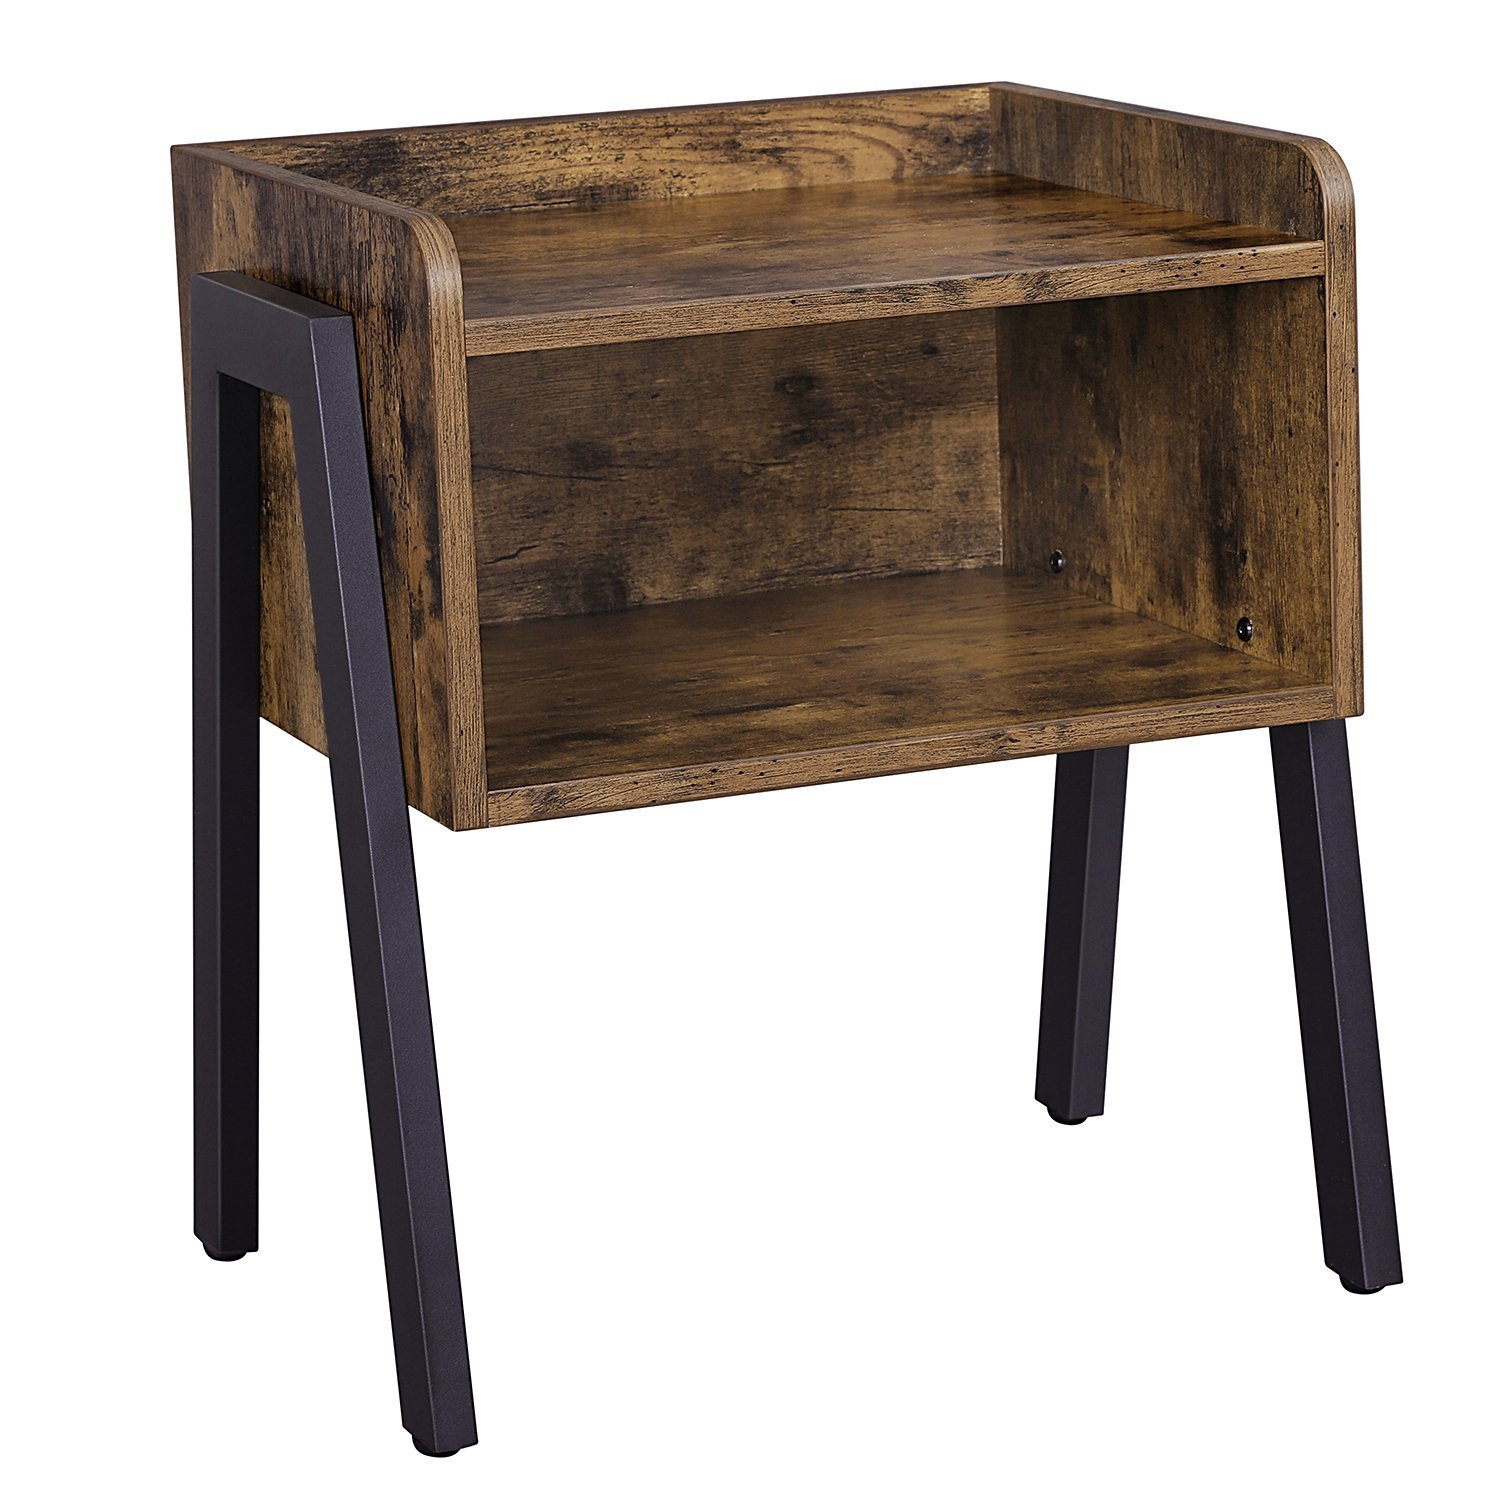 small side table living room open storage furniture essentials stacking accent end tables sofa couch bedside home decor iron legs vintage style stackable kitchen wooden coffee